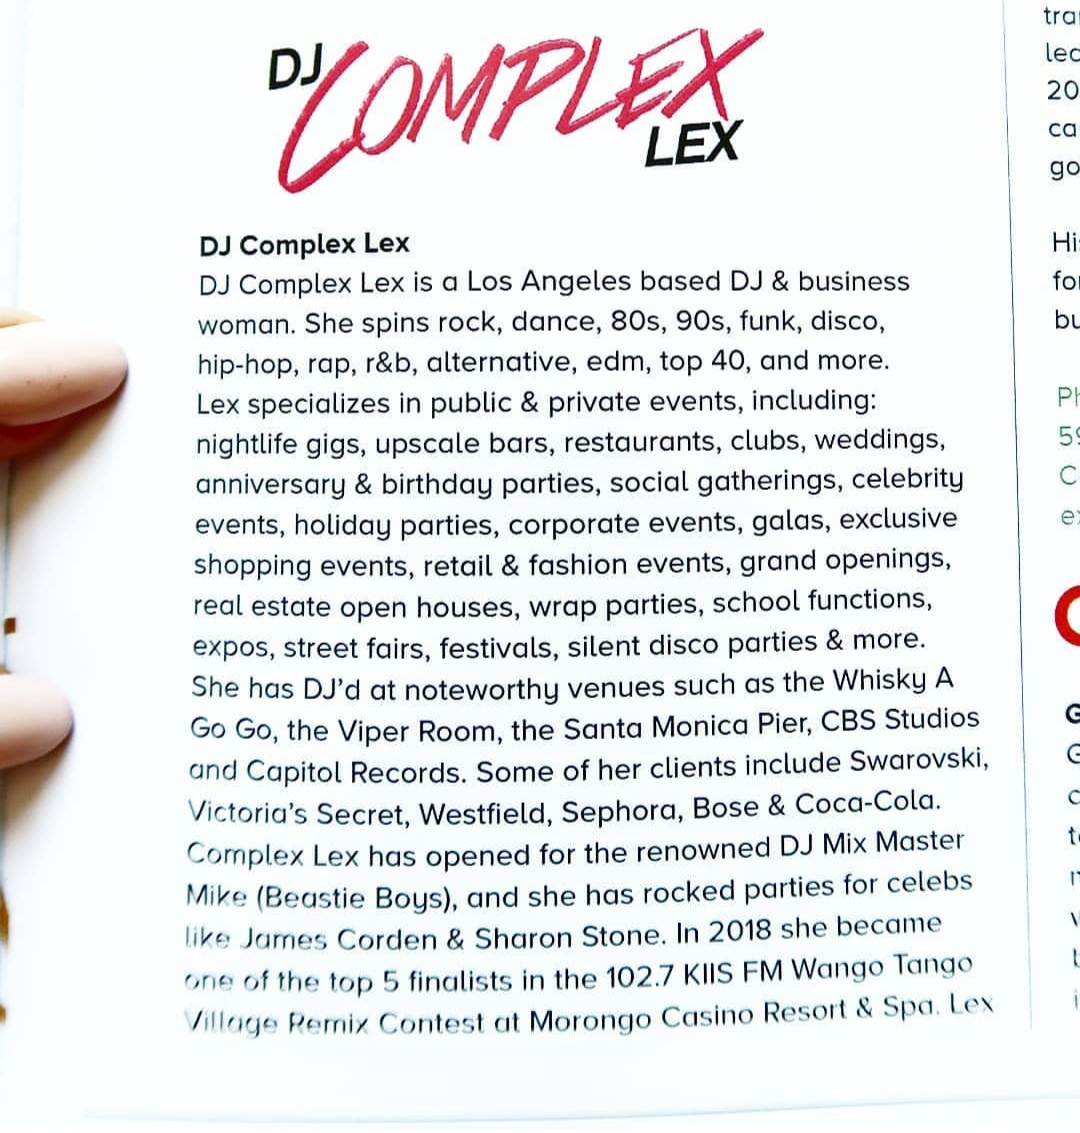 female dj los angeles corporate dj